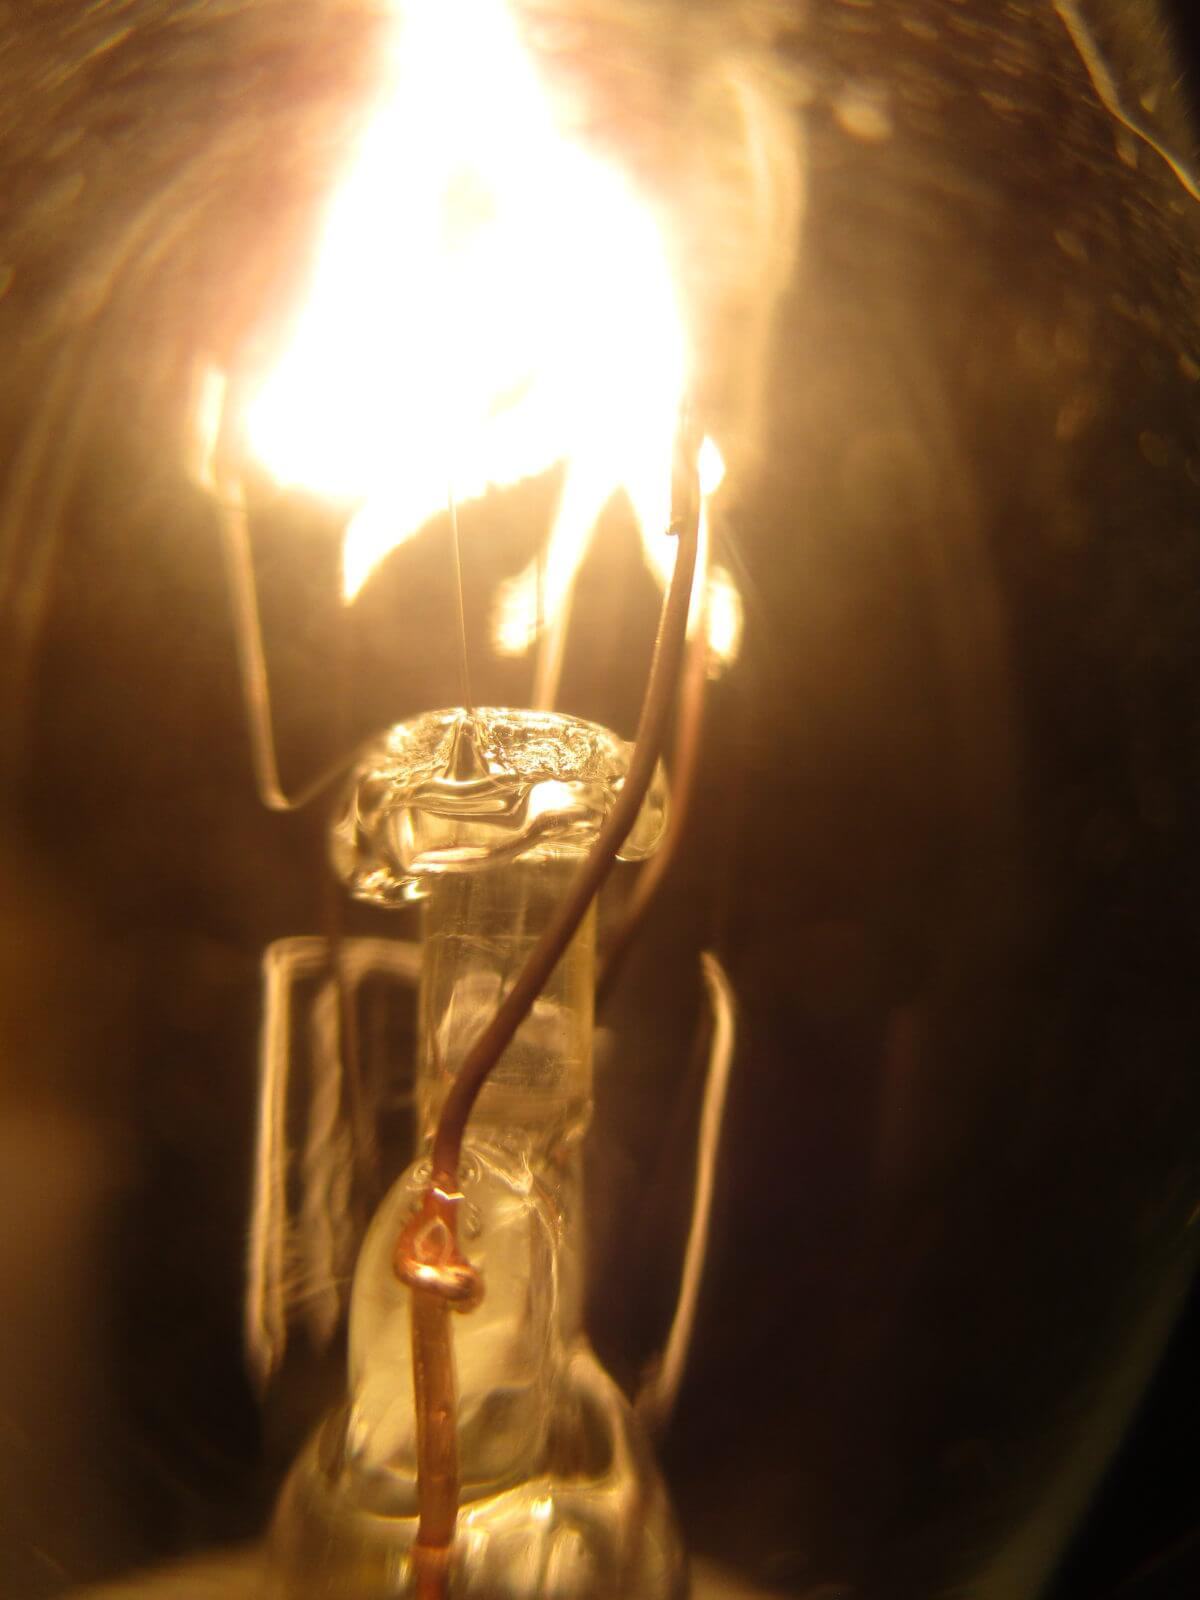 Lightbulb Ula Pomian